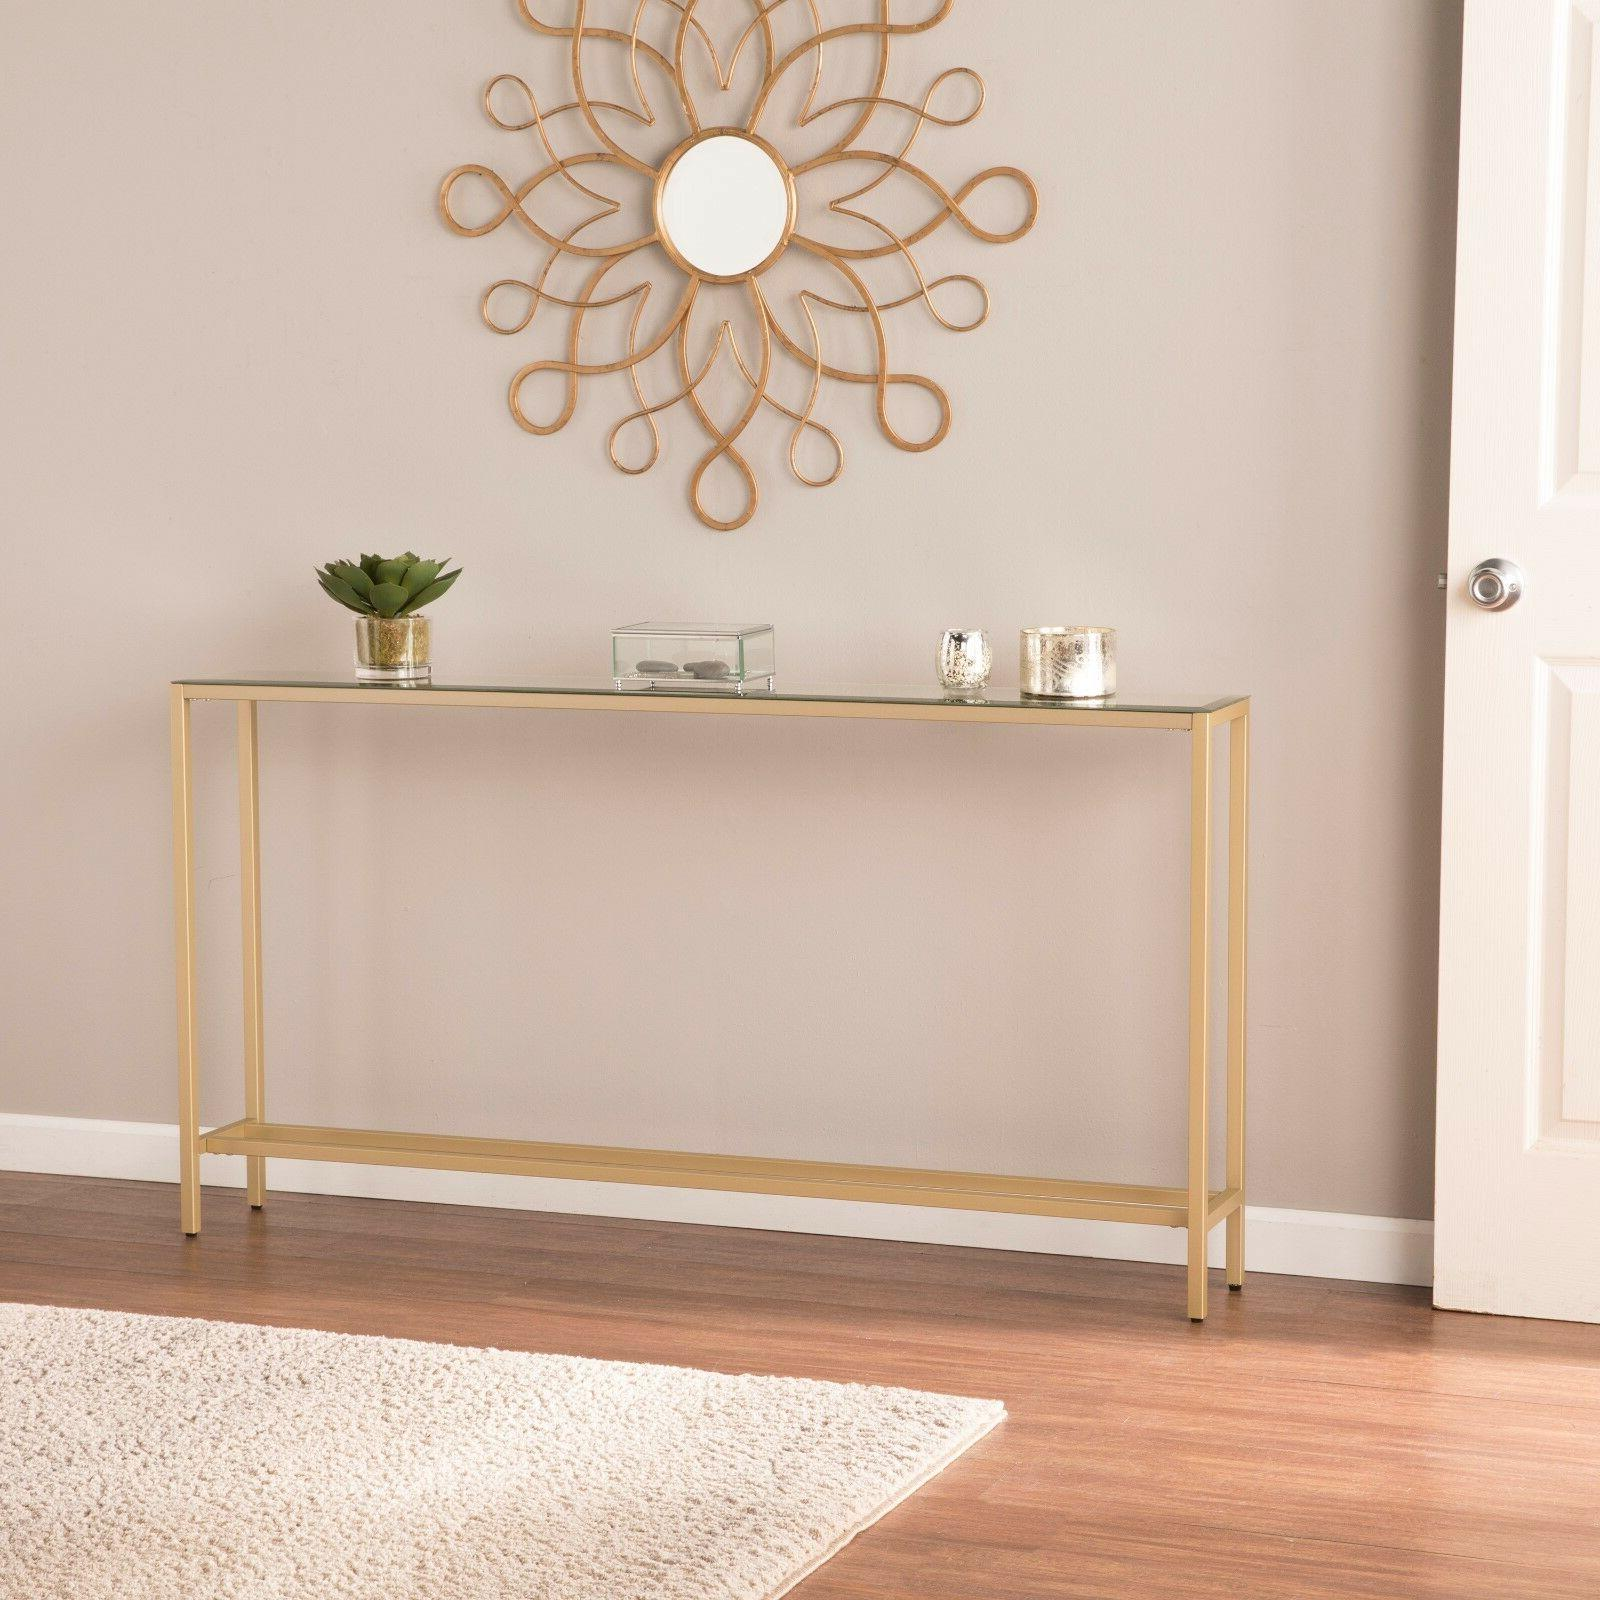 JST69529 Narrow Console Table w/ Mirrored Top - Gold